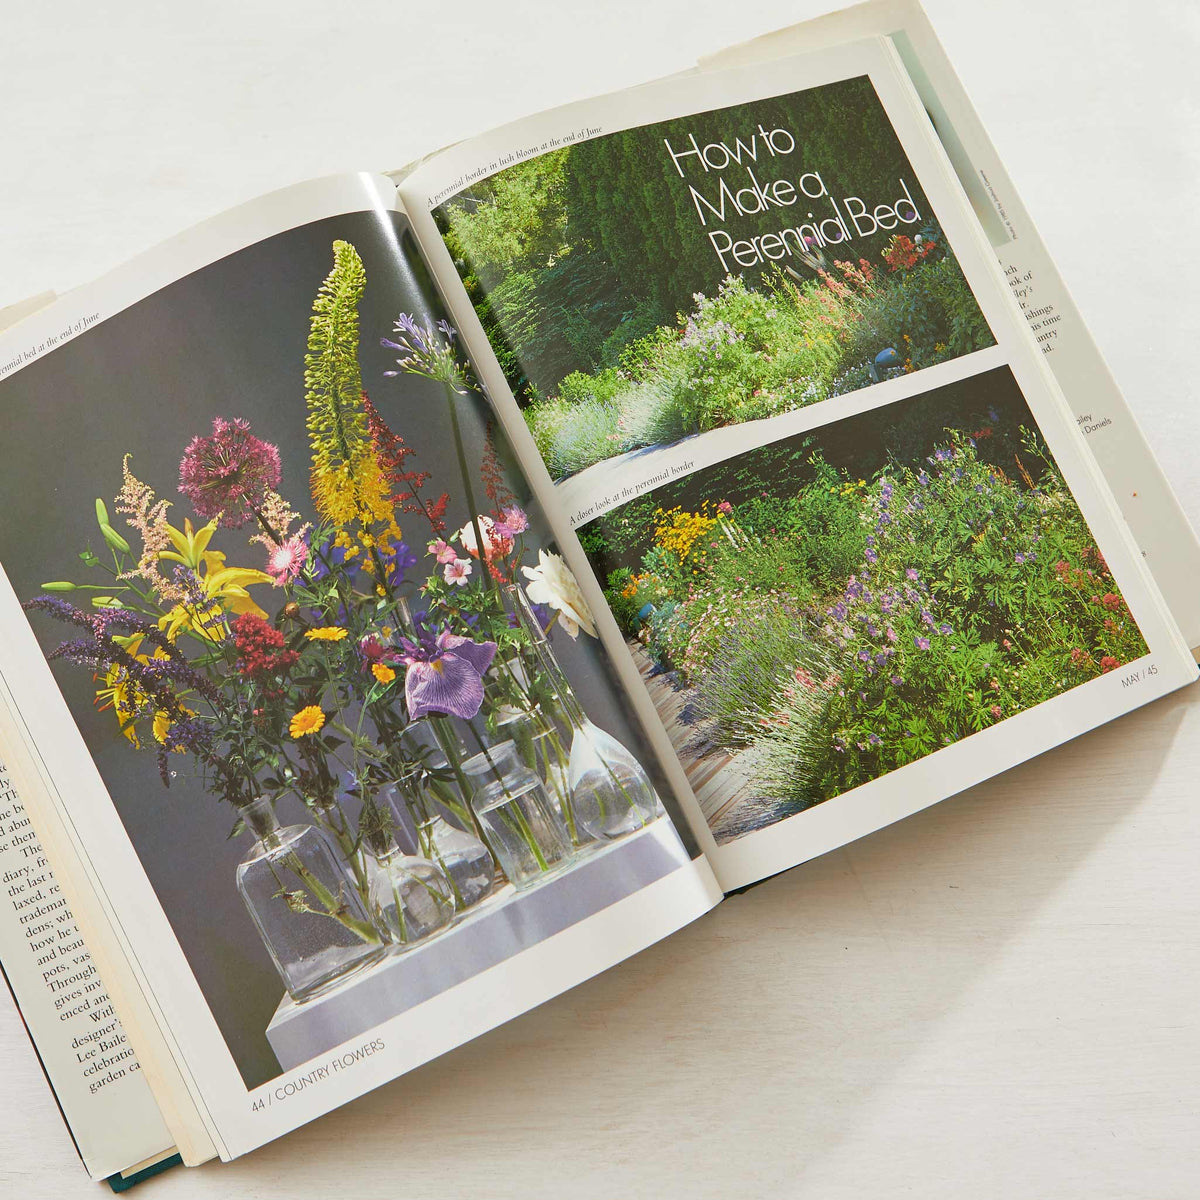 Lee Bailey's County Flowers. Best flower gardening bible. Covers meadows, perennial beds, flowers to plant in fall and winter. Best gardening guide.